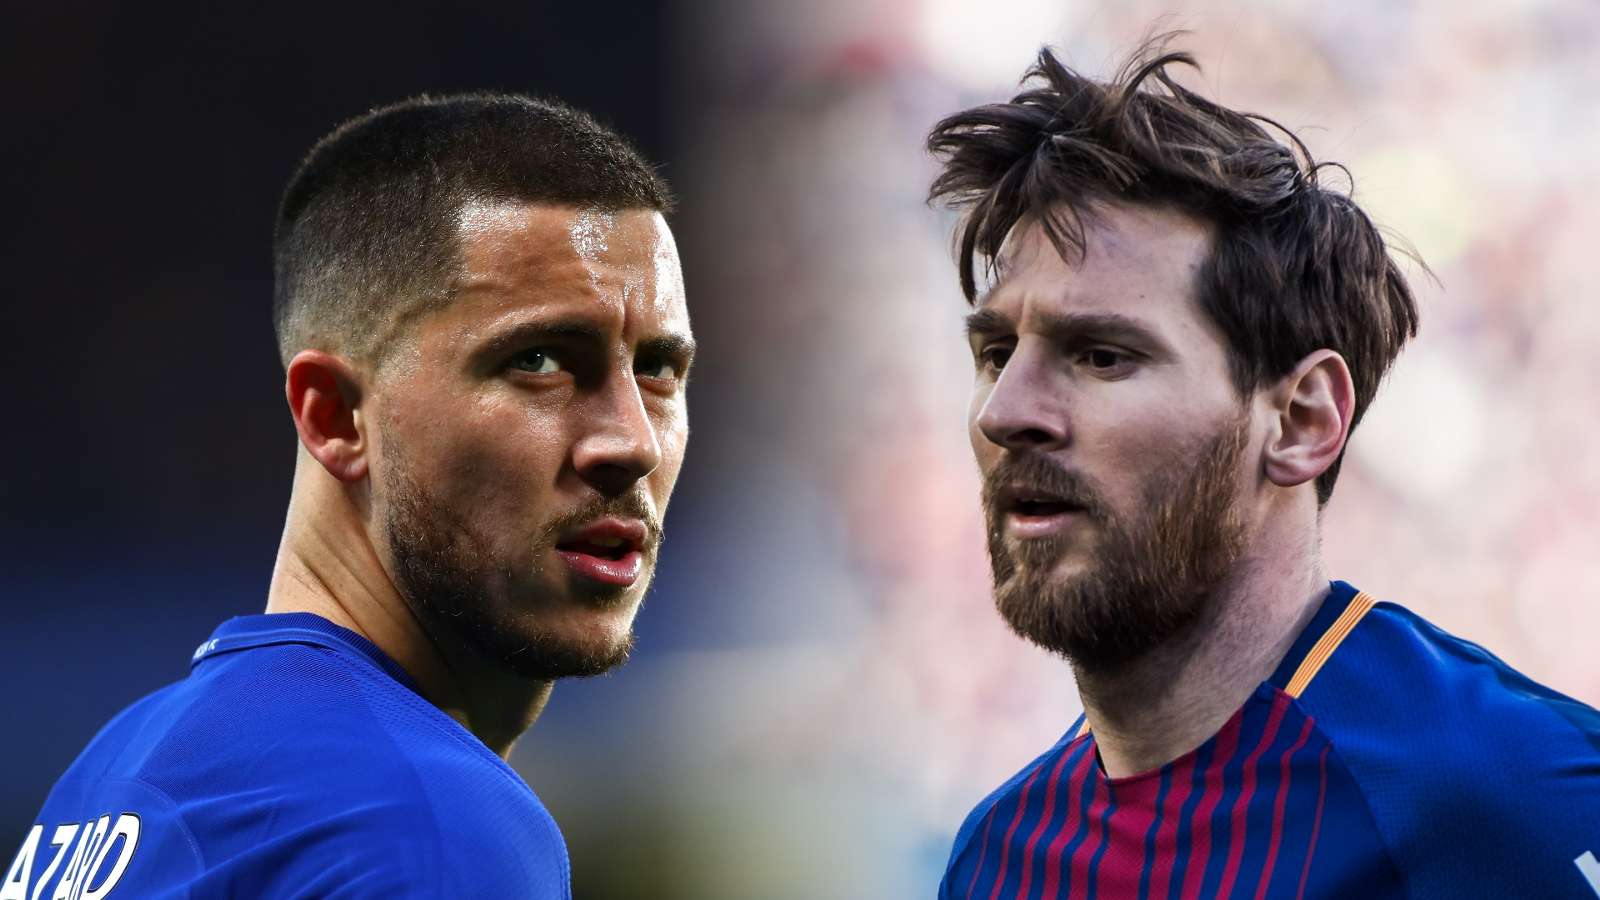 Eto'o says Hazard is close to Messi's level